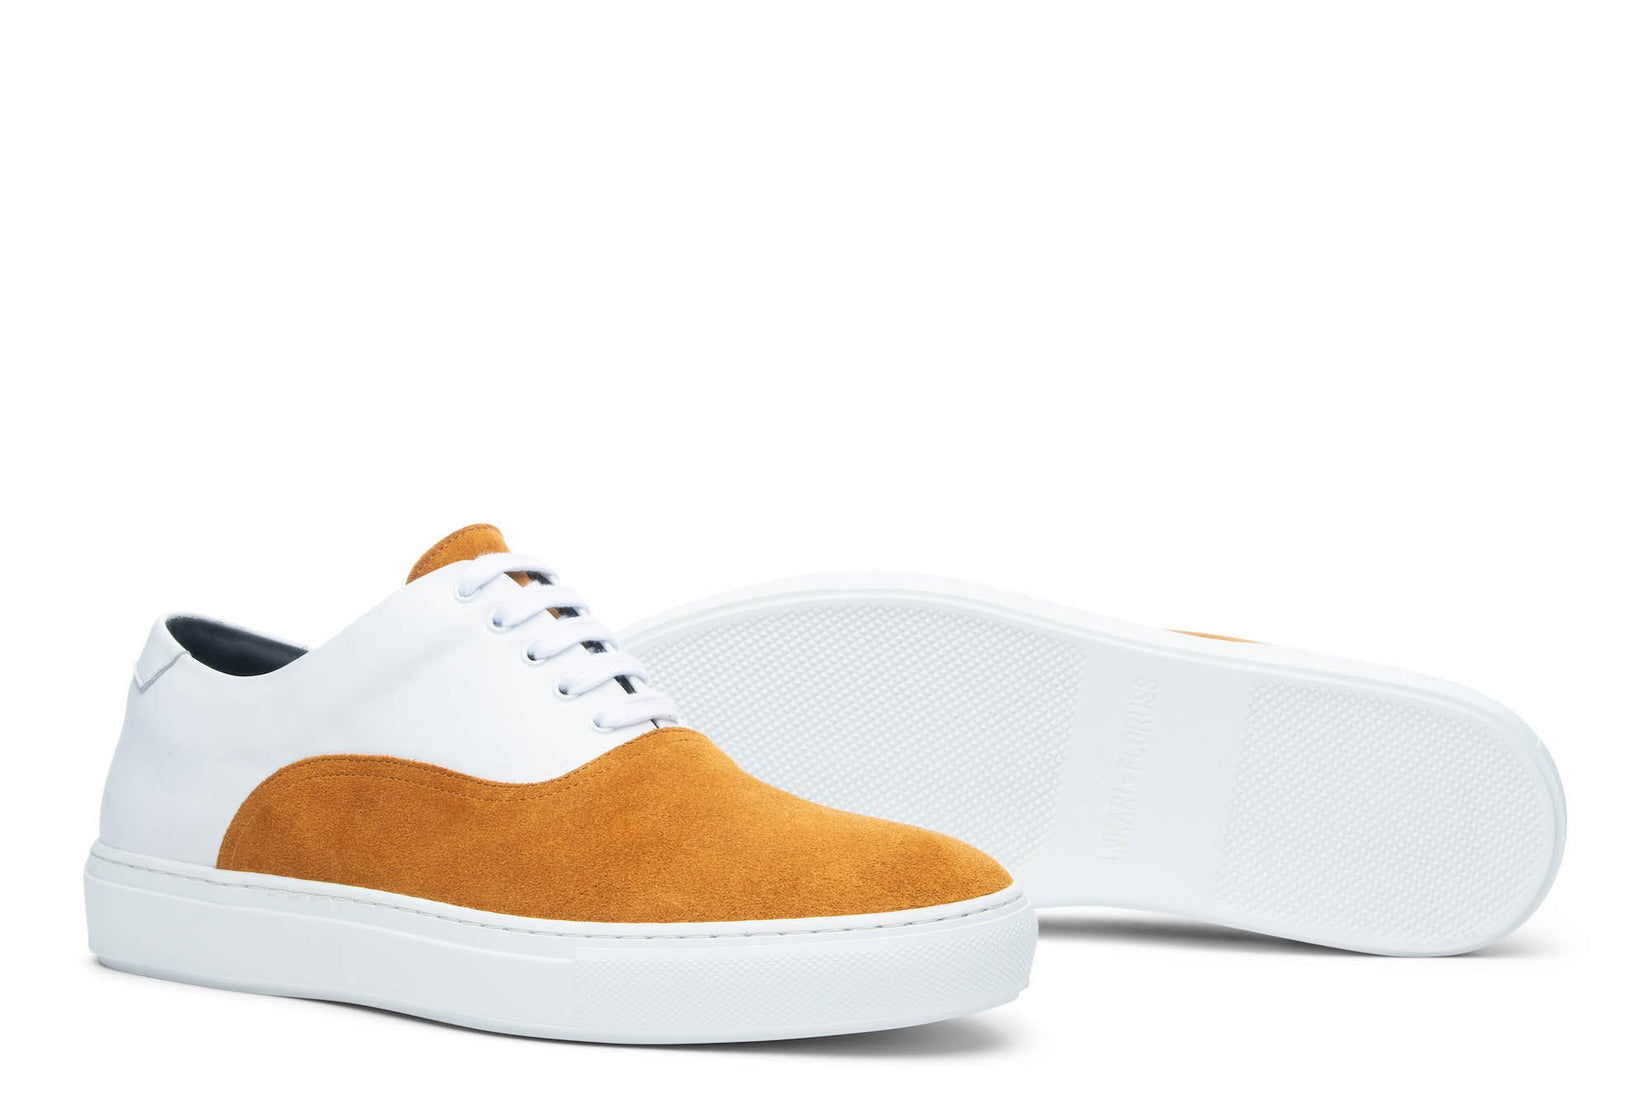 Sunday Two-Tone Skater Sneaker White/Marigold